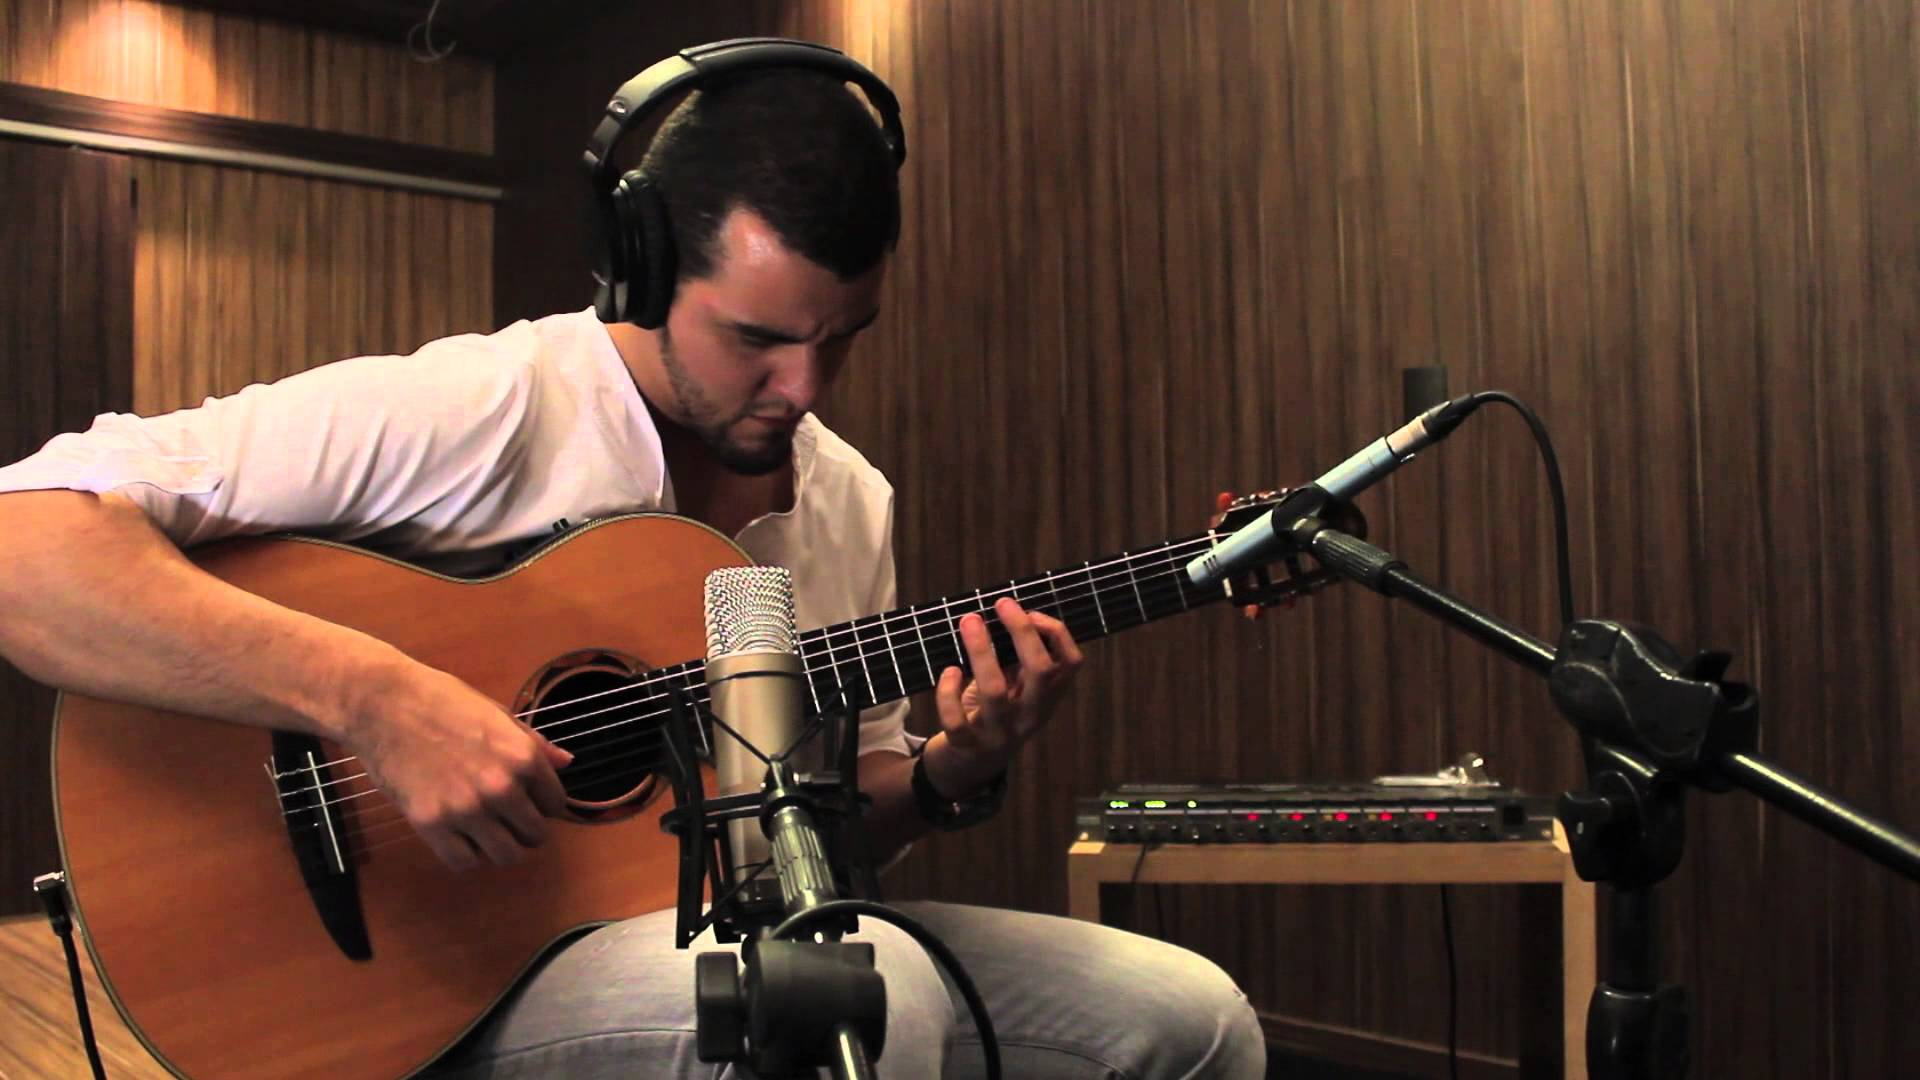 Mono and Stereo Acoustic Guitar recording - YouTube